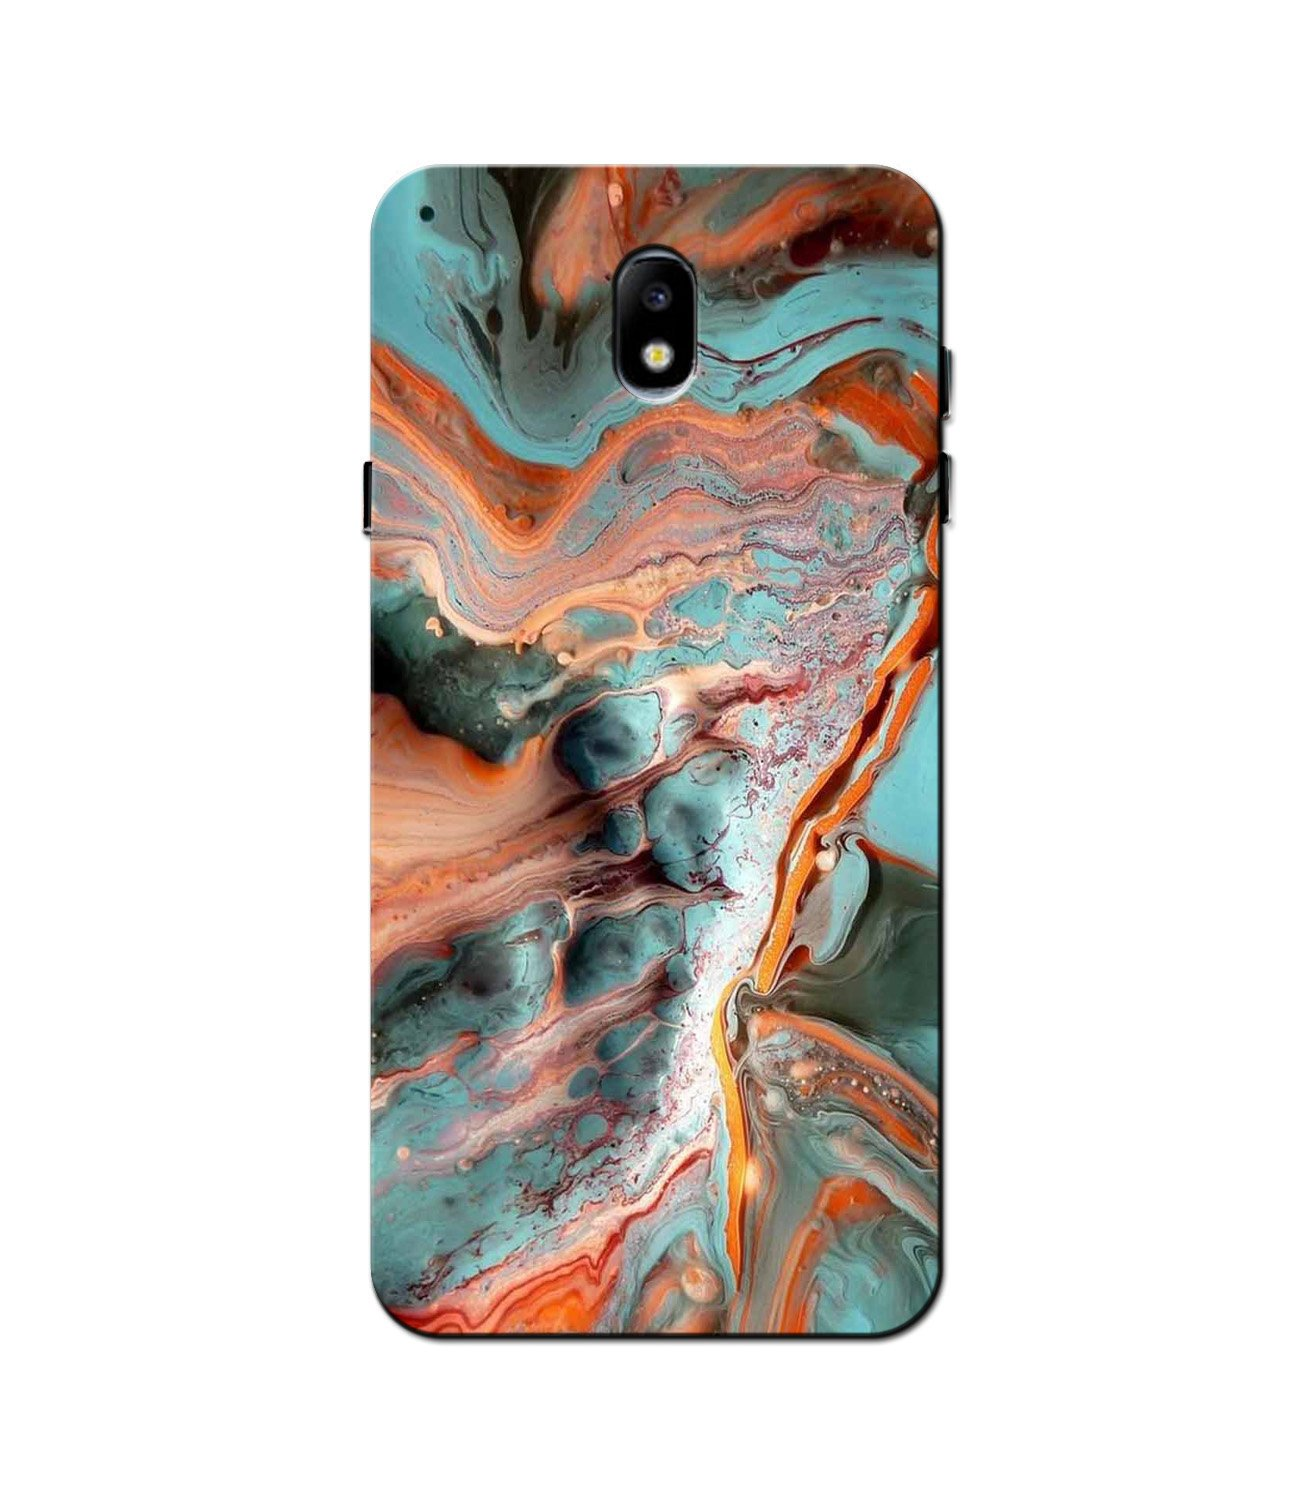 Marble Texture Mobile Back Case for Galaxy J3 Pro  (Design - 309)